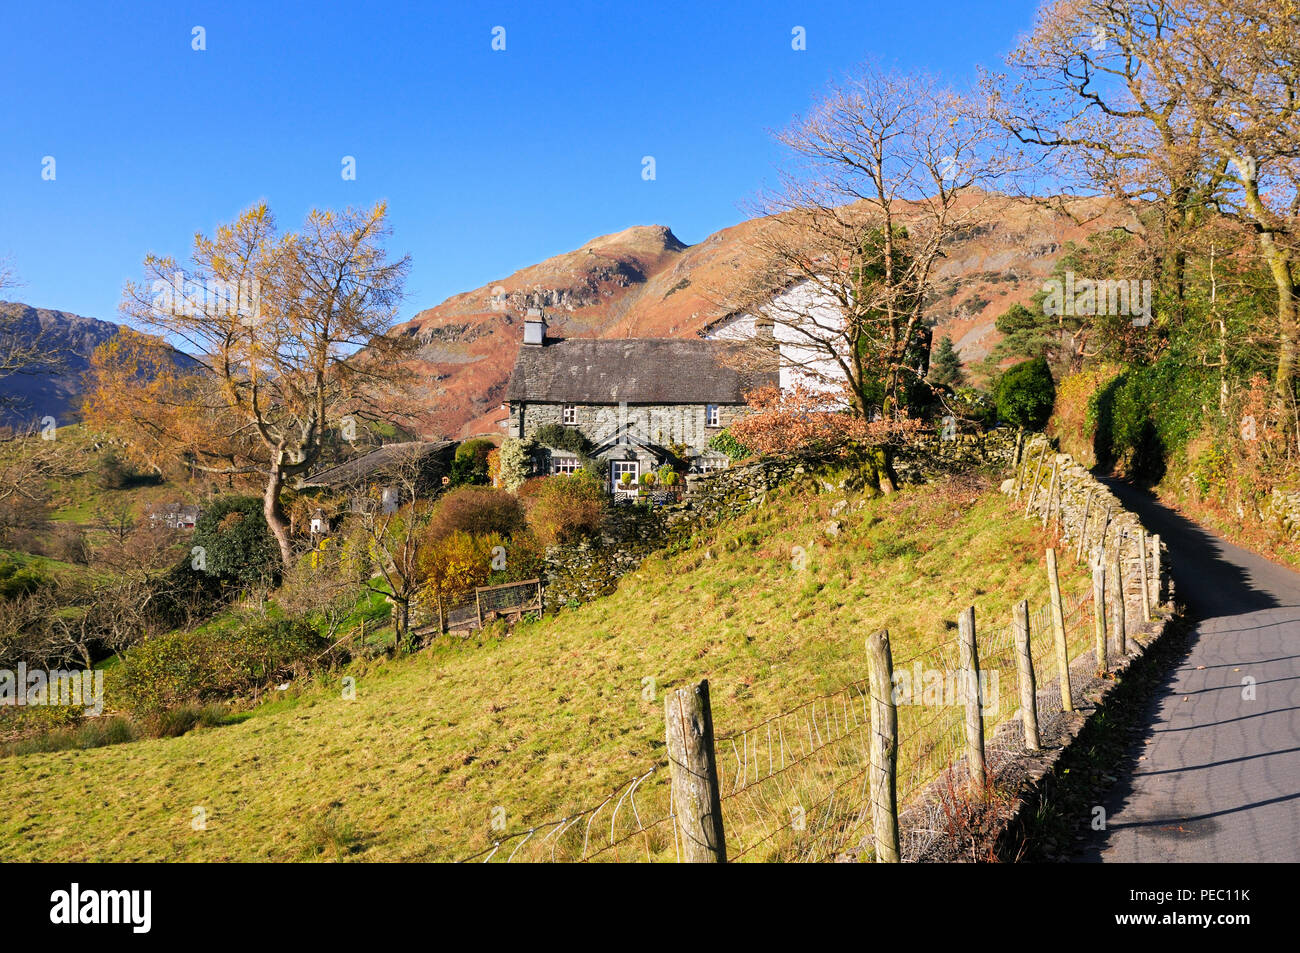 A charming traditional stone cottage in the Langdale Valley, Lake District National Park, England, UK - Stock Image